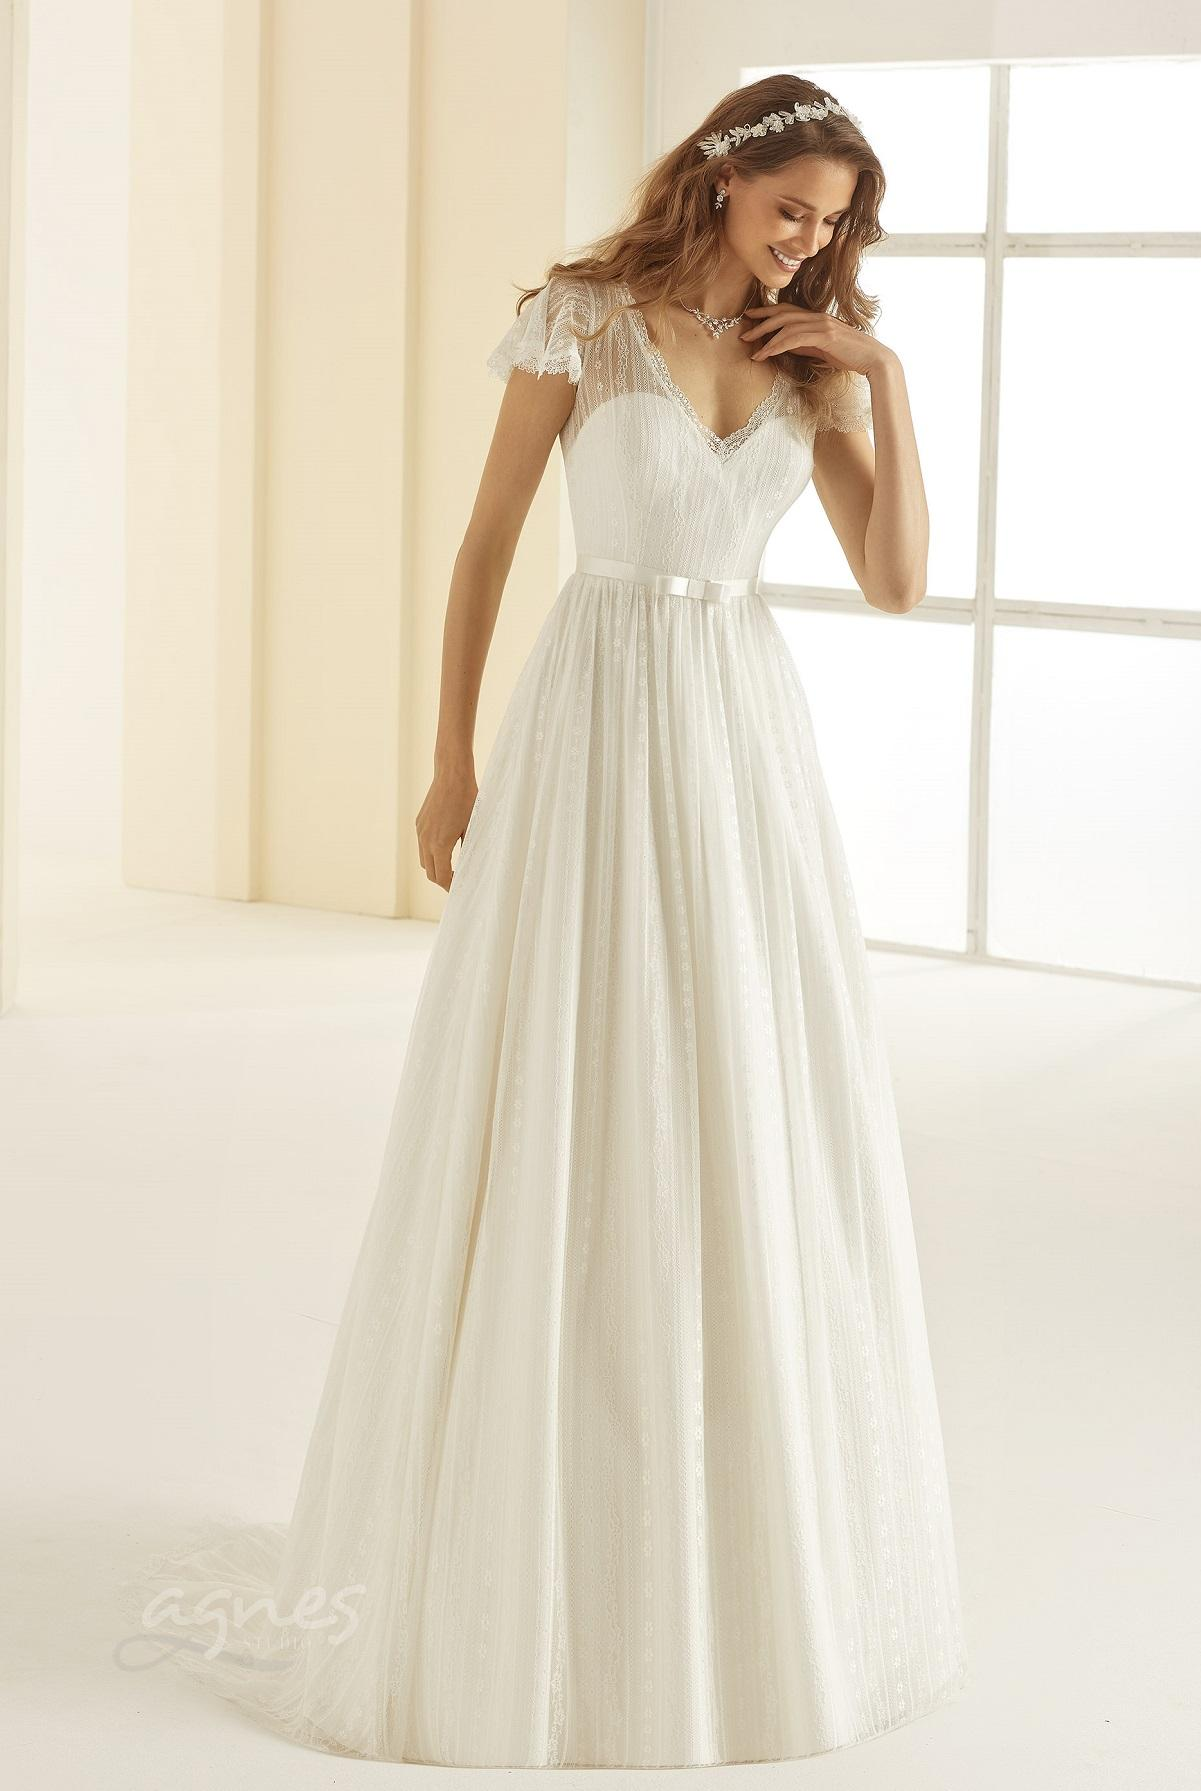 svatebni-saty-CAROLINA-Bianco-Evento-bridal-dress-(1)